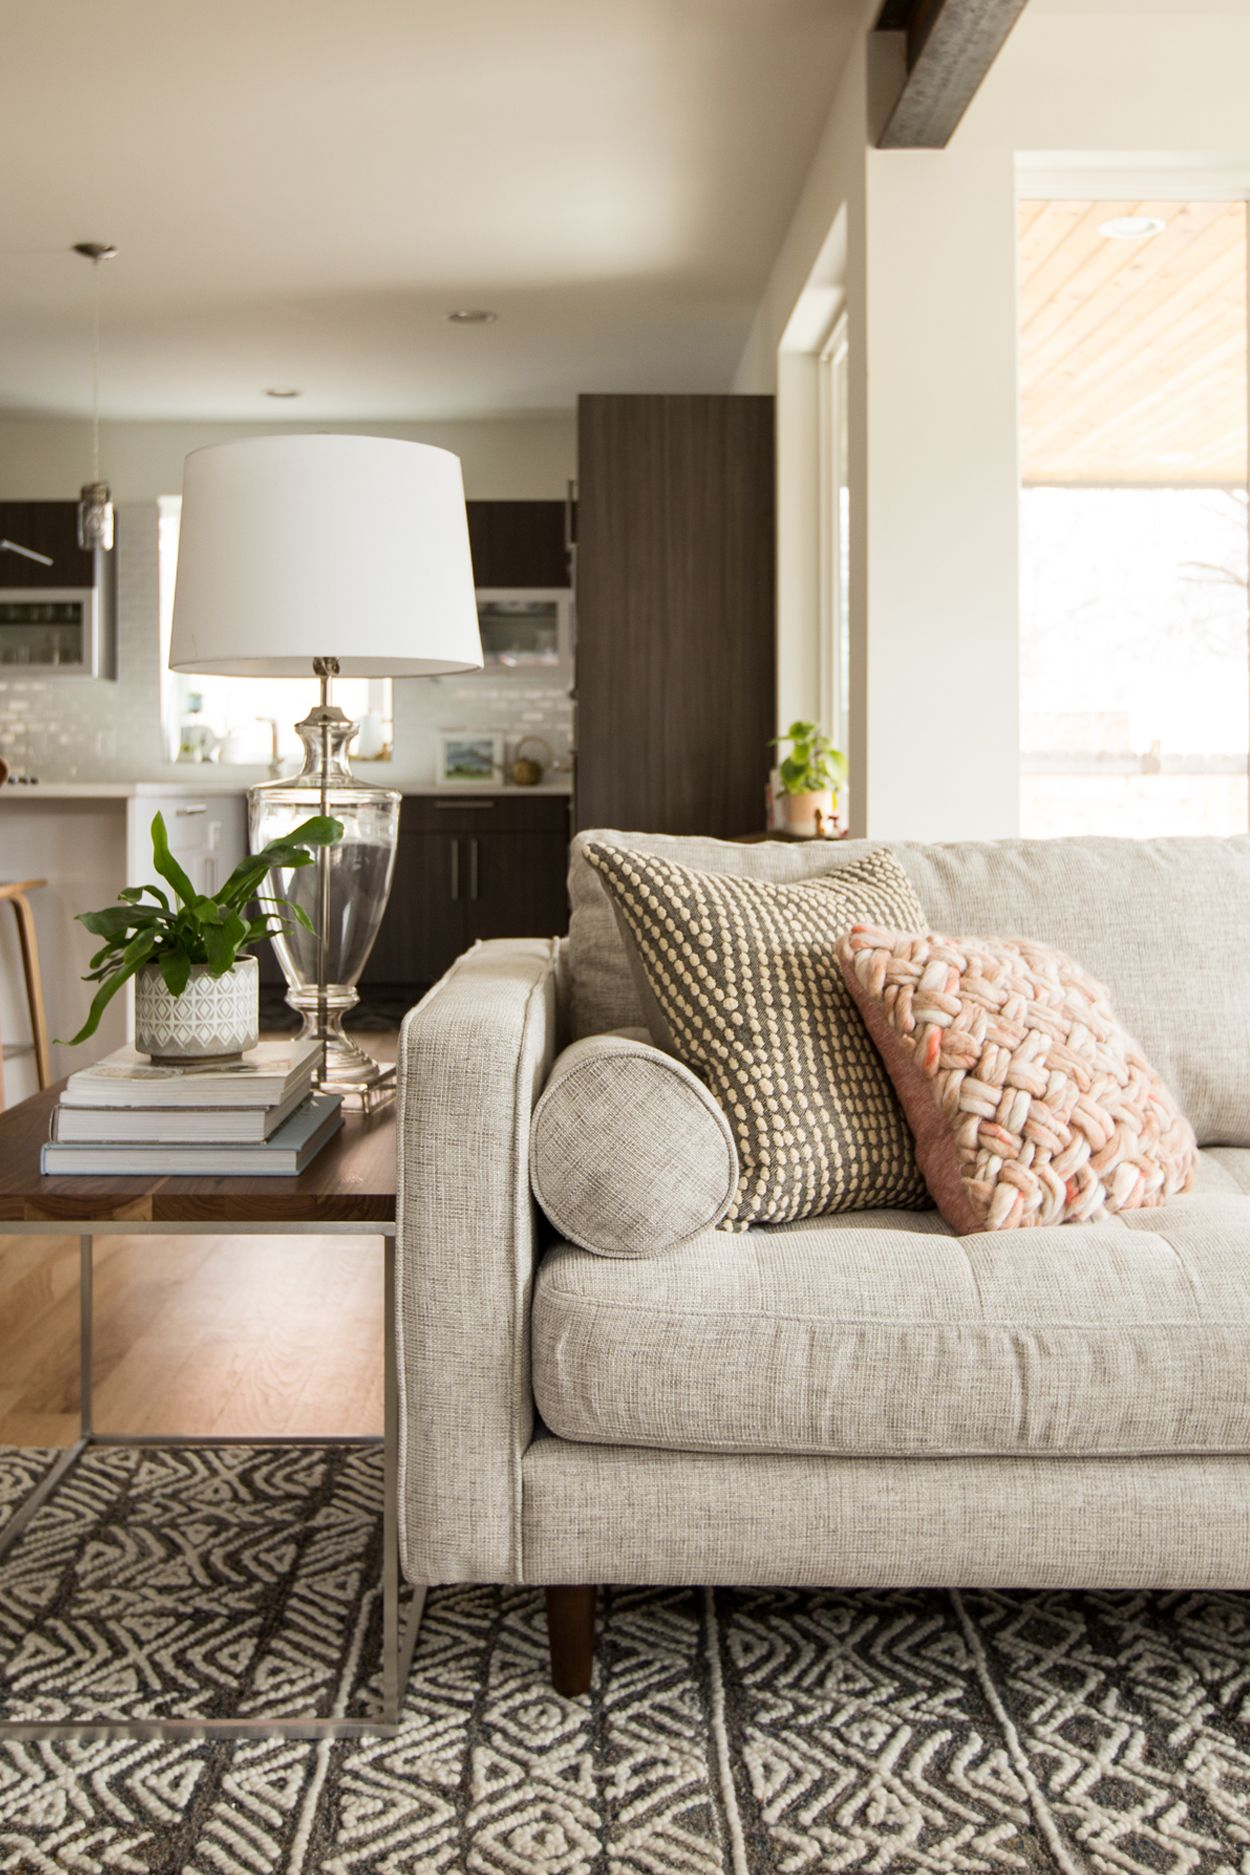 The lines of the couch and low profile of the back are ideal and give our modern living room update the right sensibility the lines of the couch end and